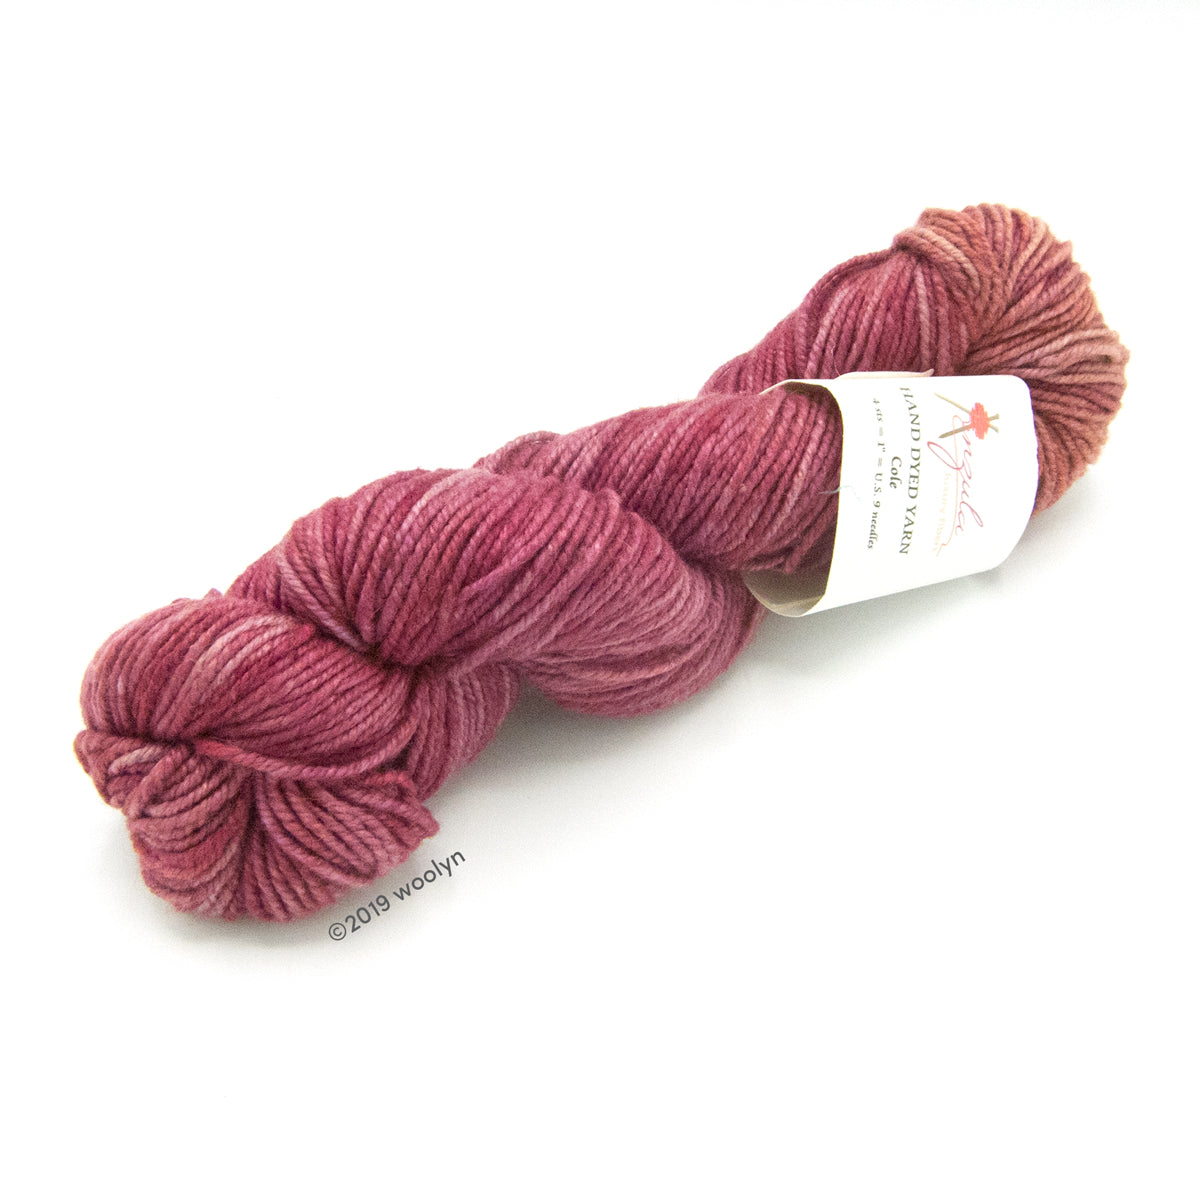 A twisted skein of Anzula Cole in a washed raspberry.